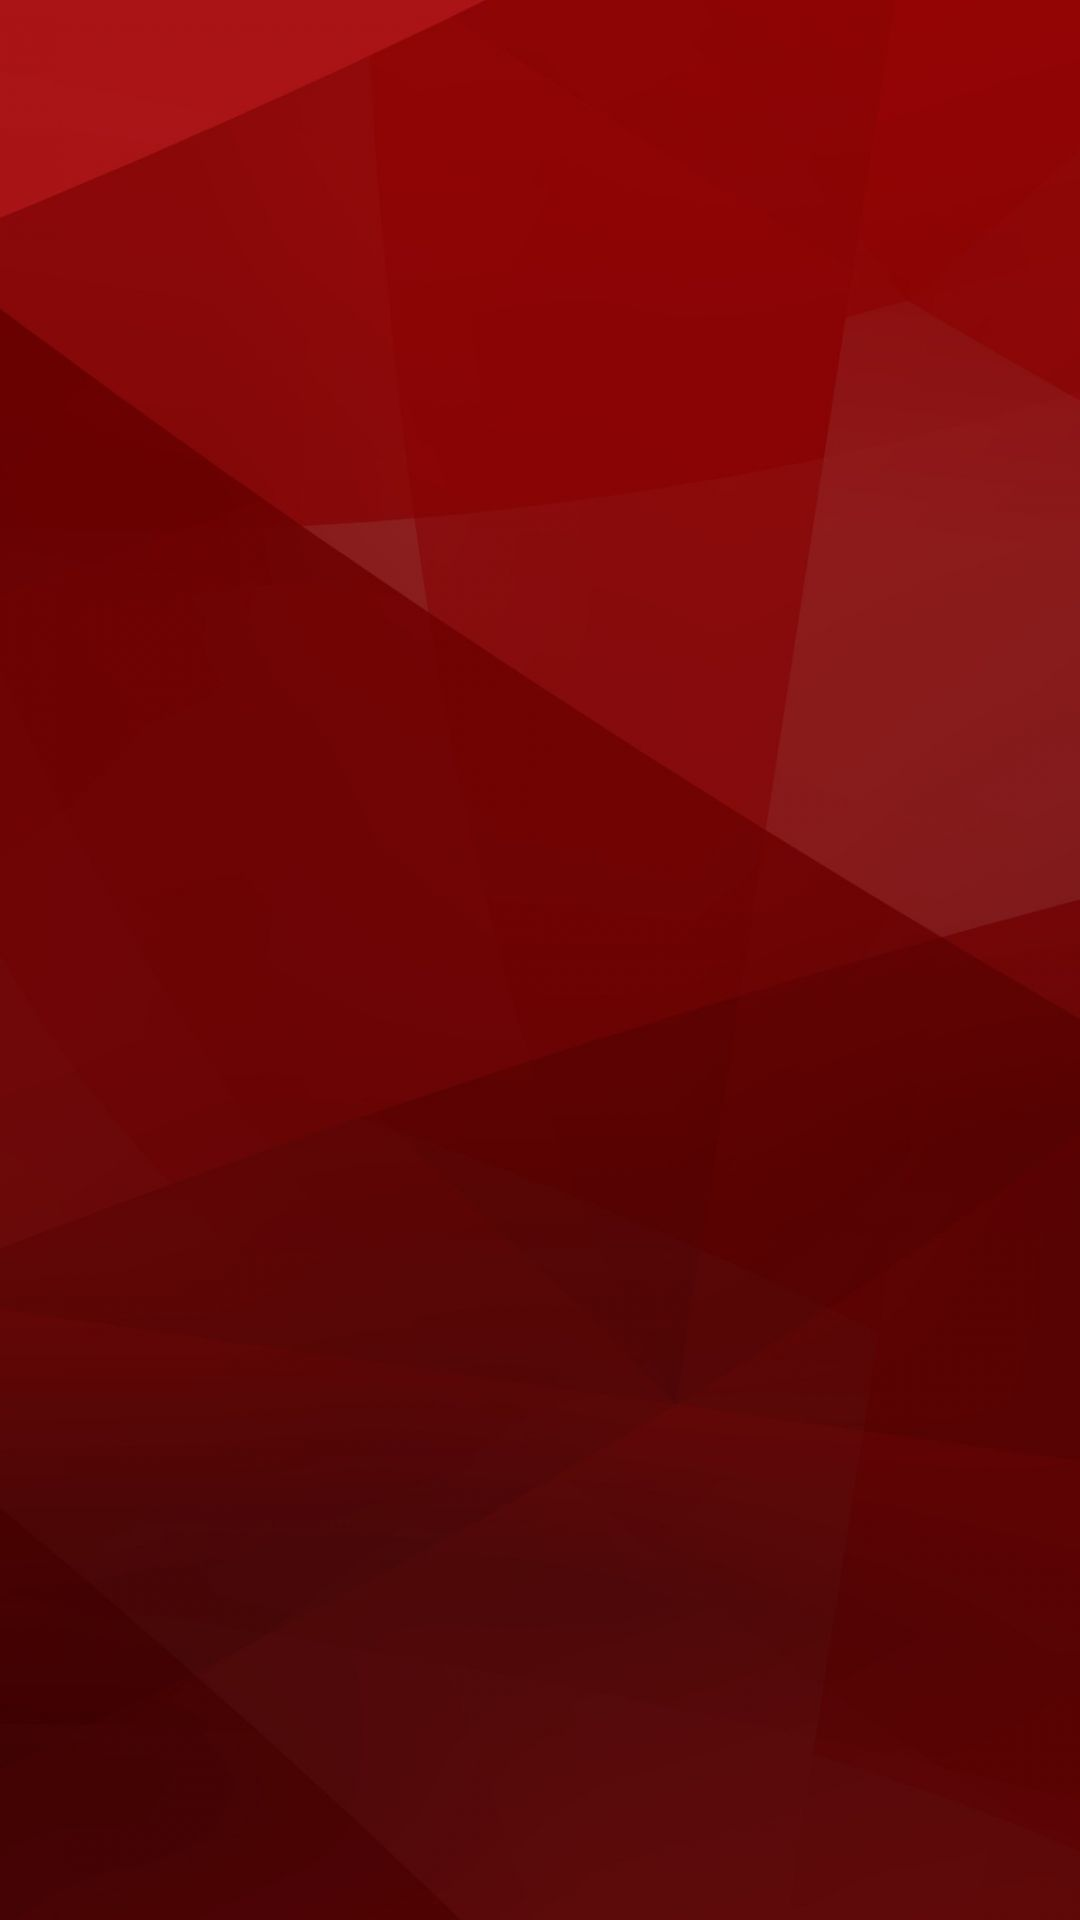 Red Hd wallpaper for android